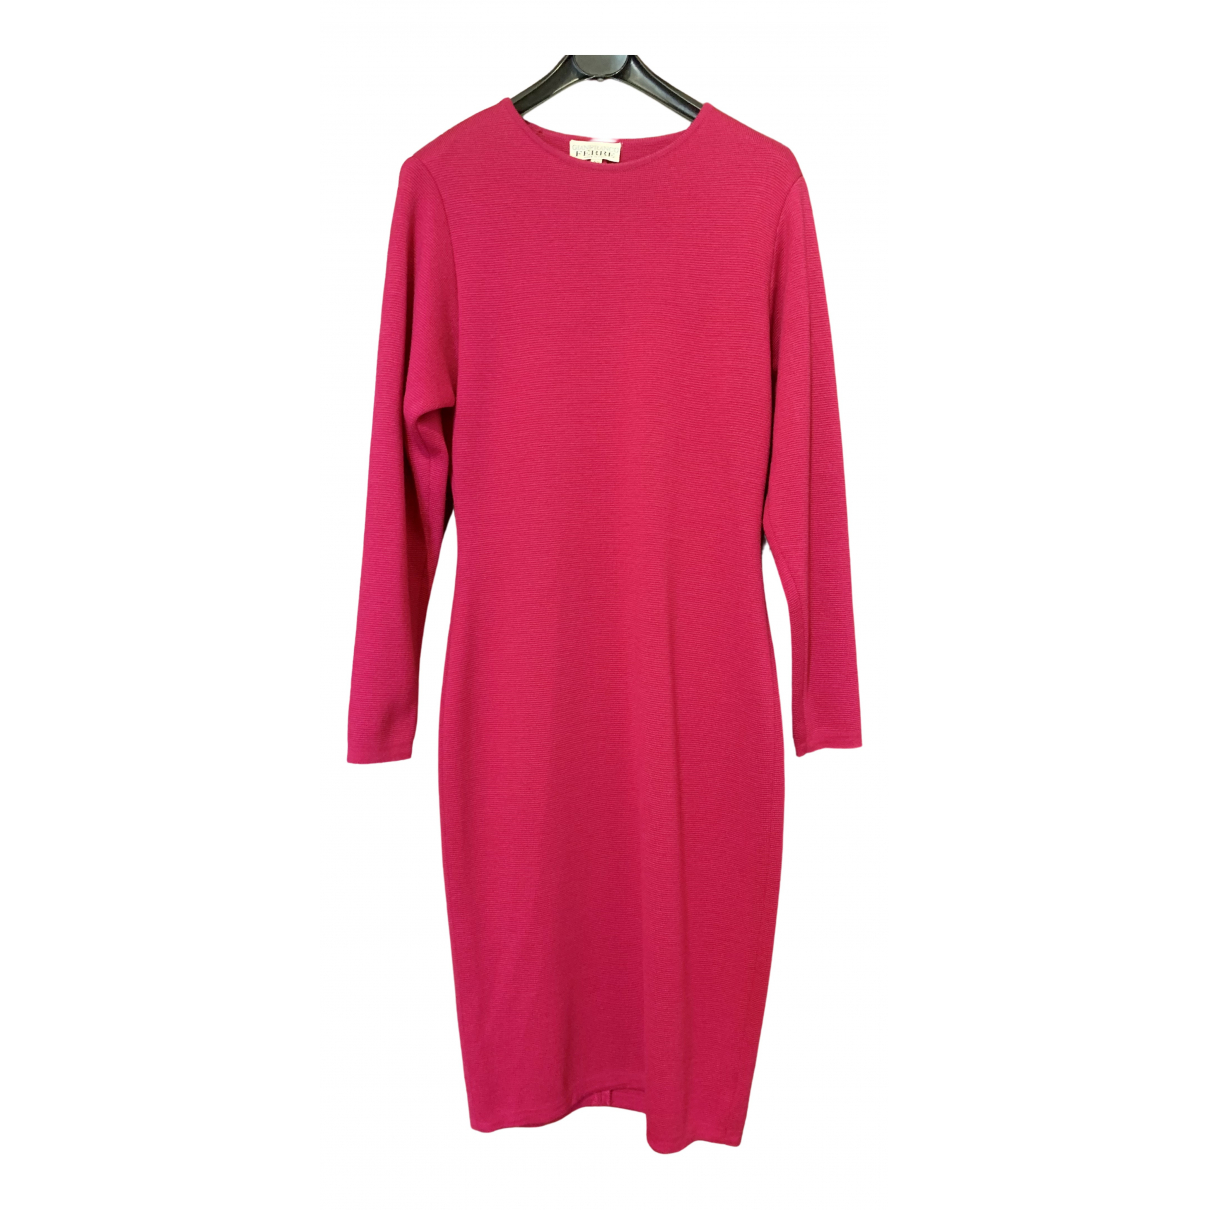 Gianfranco Ferré N Pink Wool dress for Women 42 IT